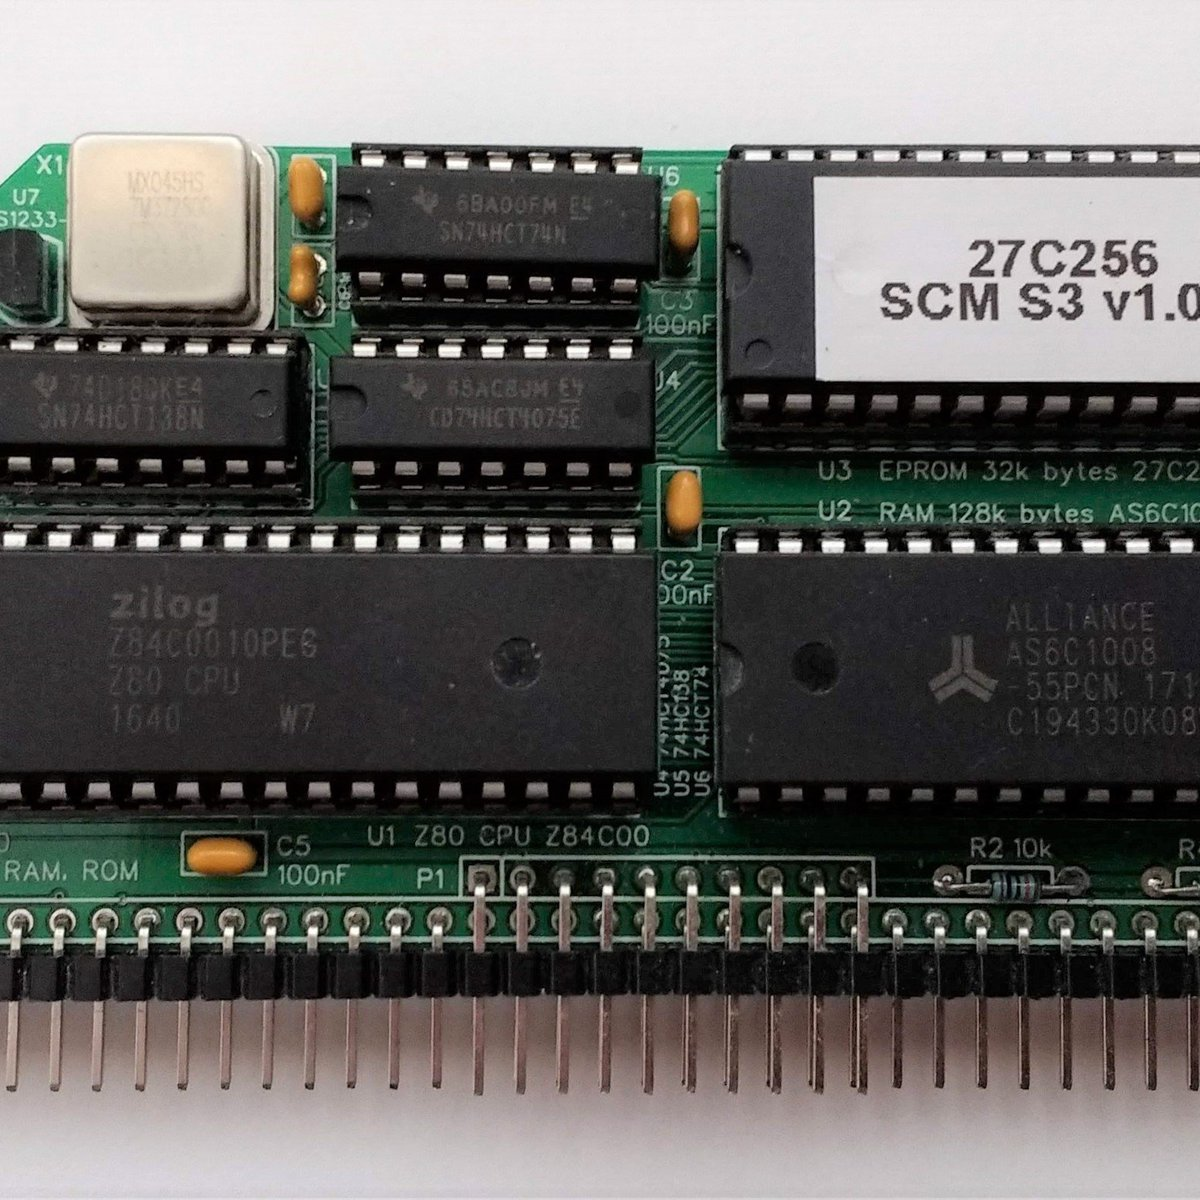 SC108 Z80 Processor Module Kit for RC2014 from Stephen C